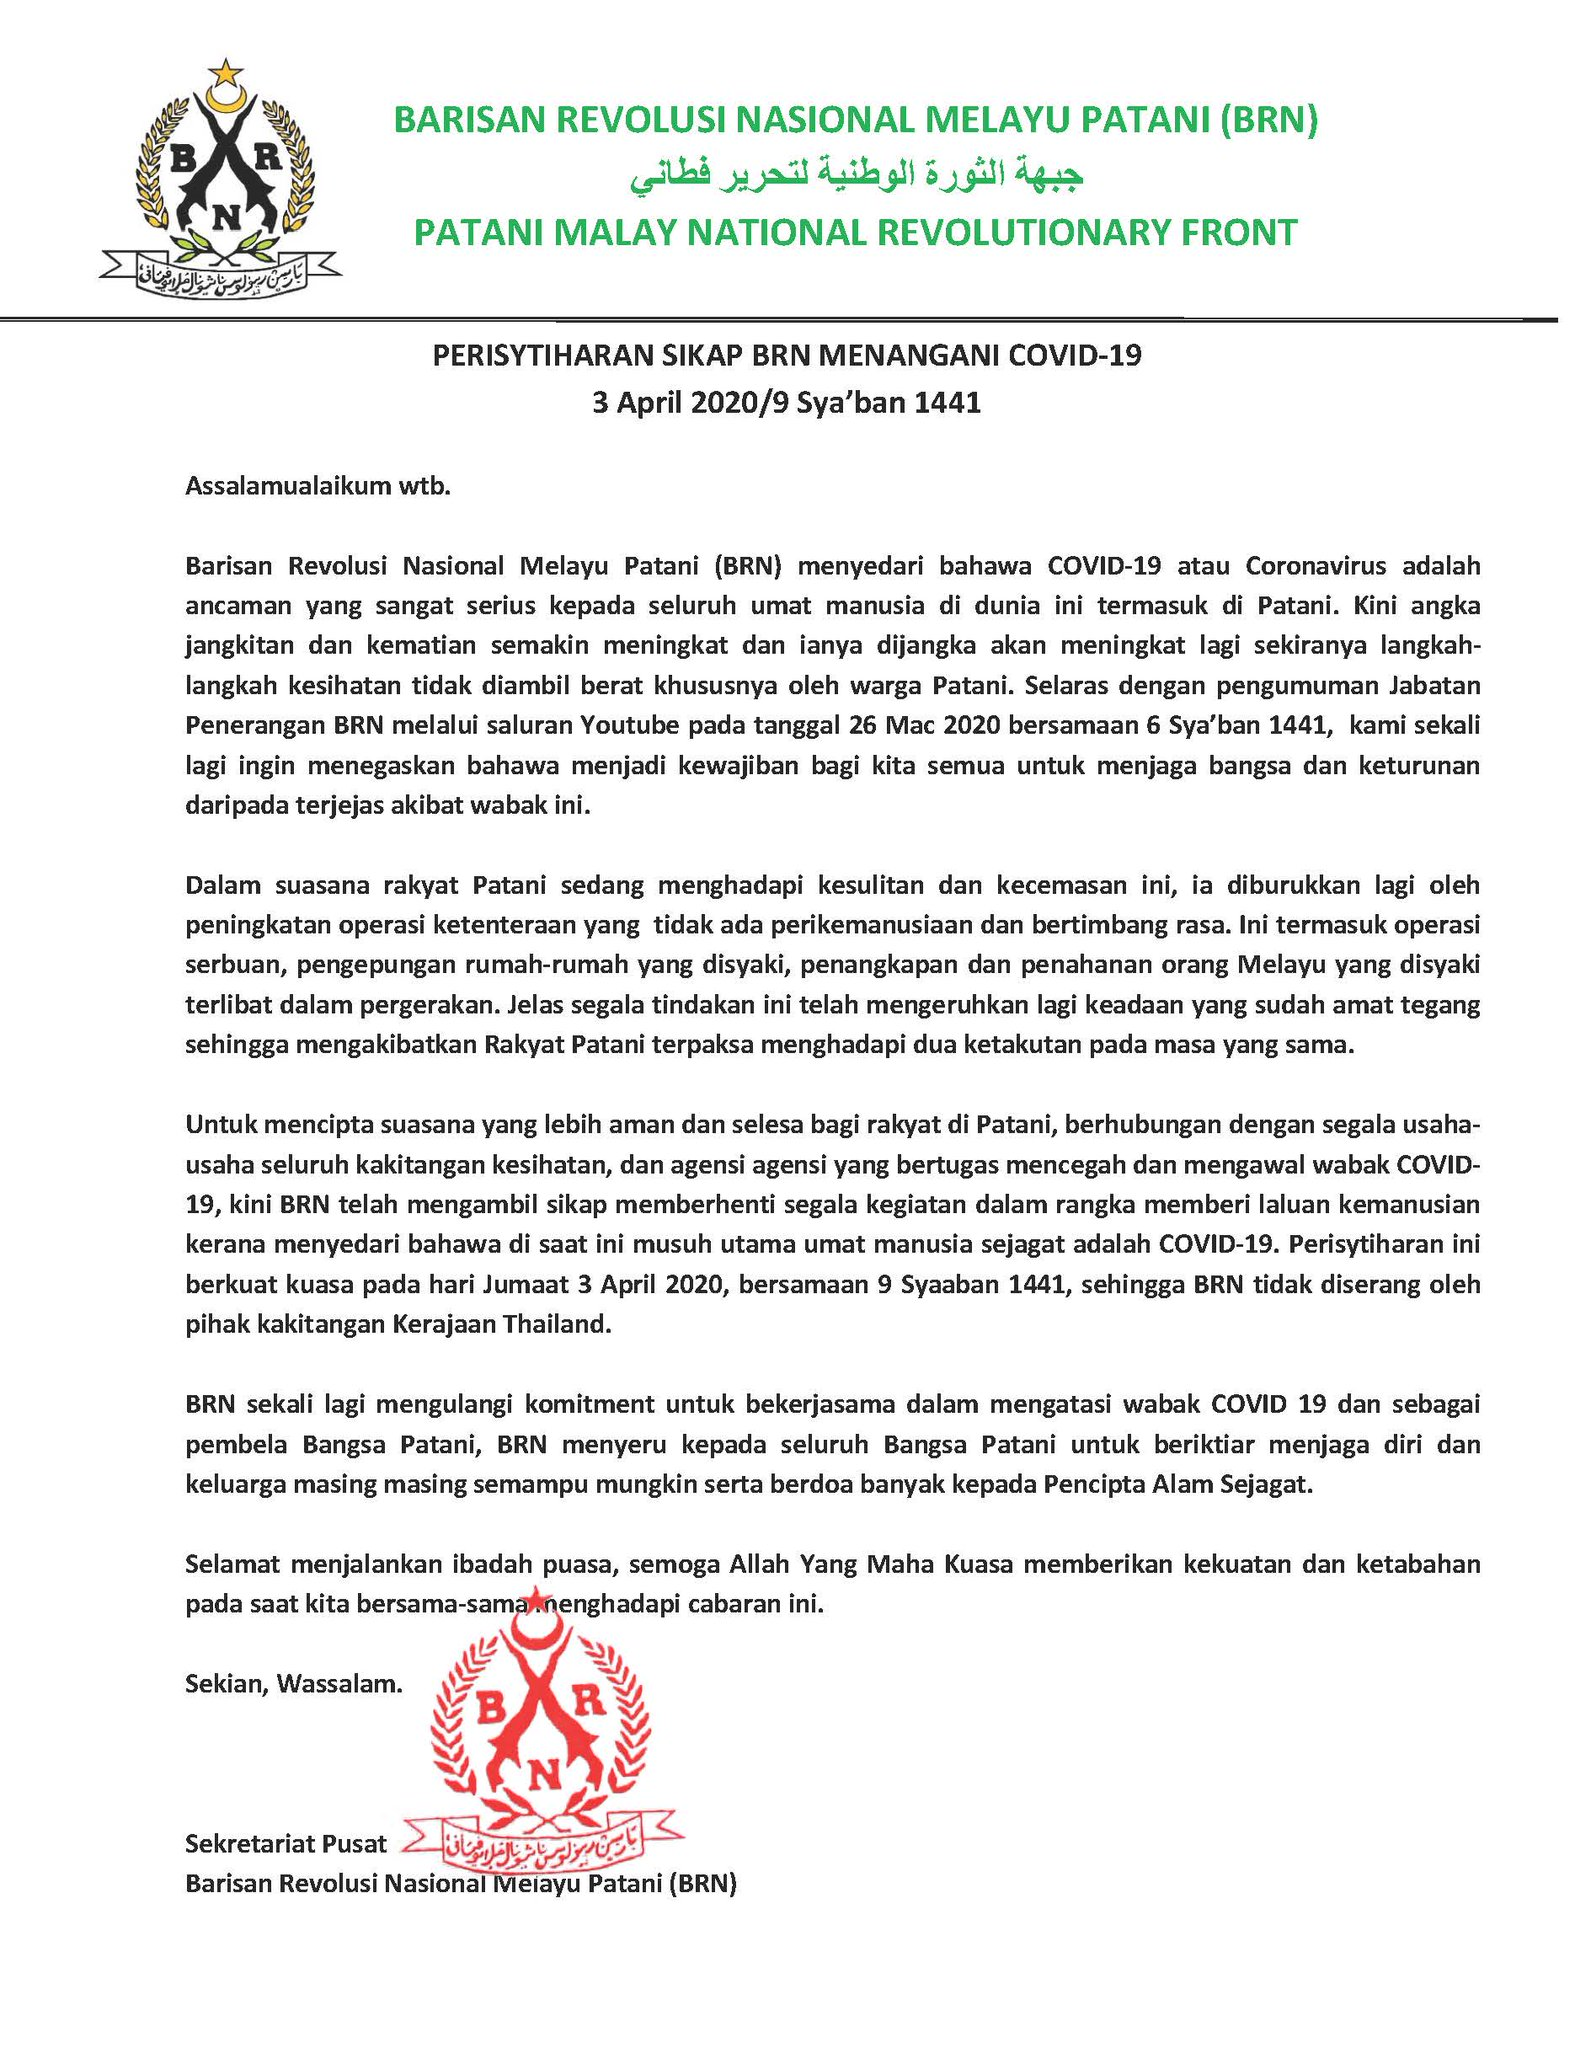 Matt Wheeler On Twitter Brn Statement On The Pandemic Indicating A Unilateral Cessation Of Military Operations Beginning 3 April For As Long As Brn Is Not Attacked By Thai Government Personnel Malay